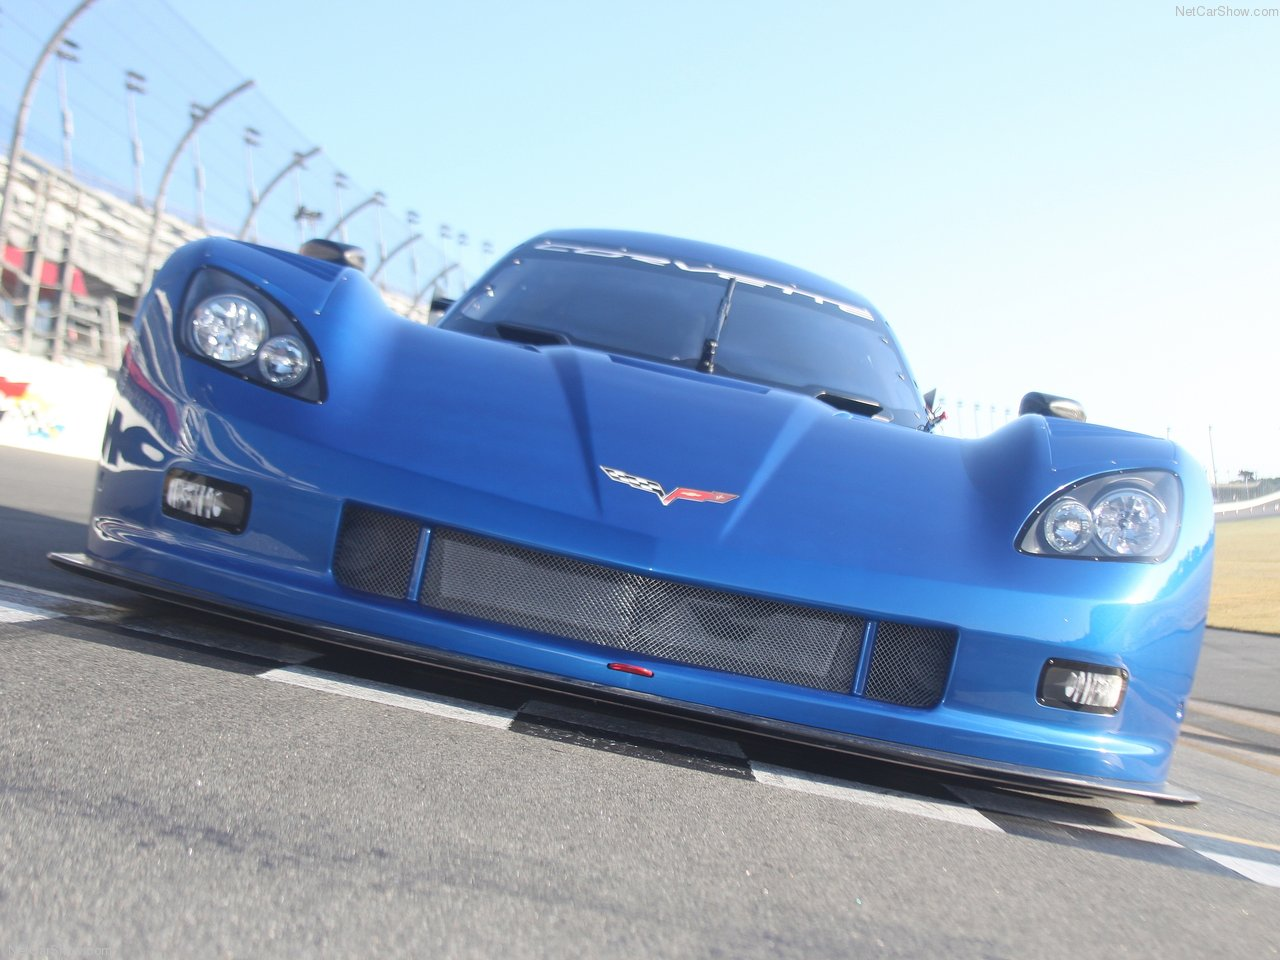 Chevrolet Corvette Daytona Racecar photo 86794